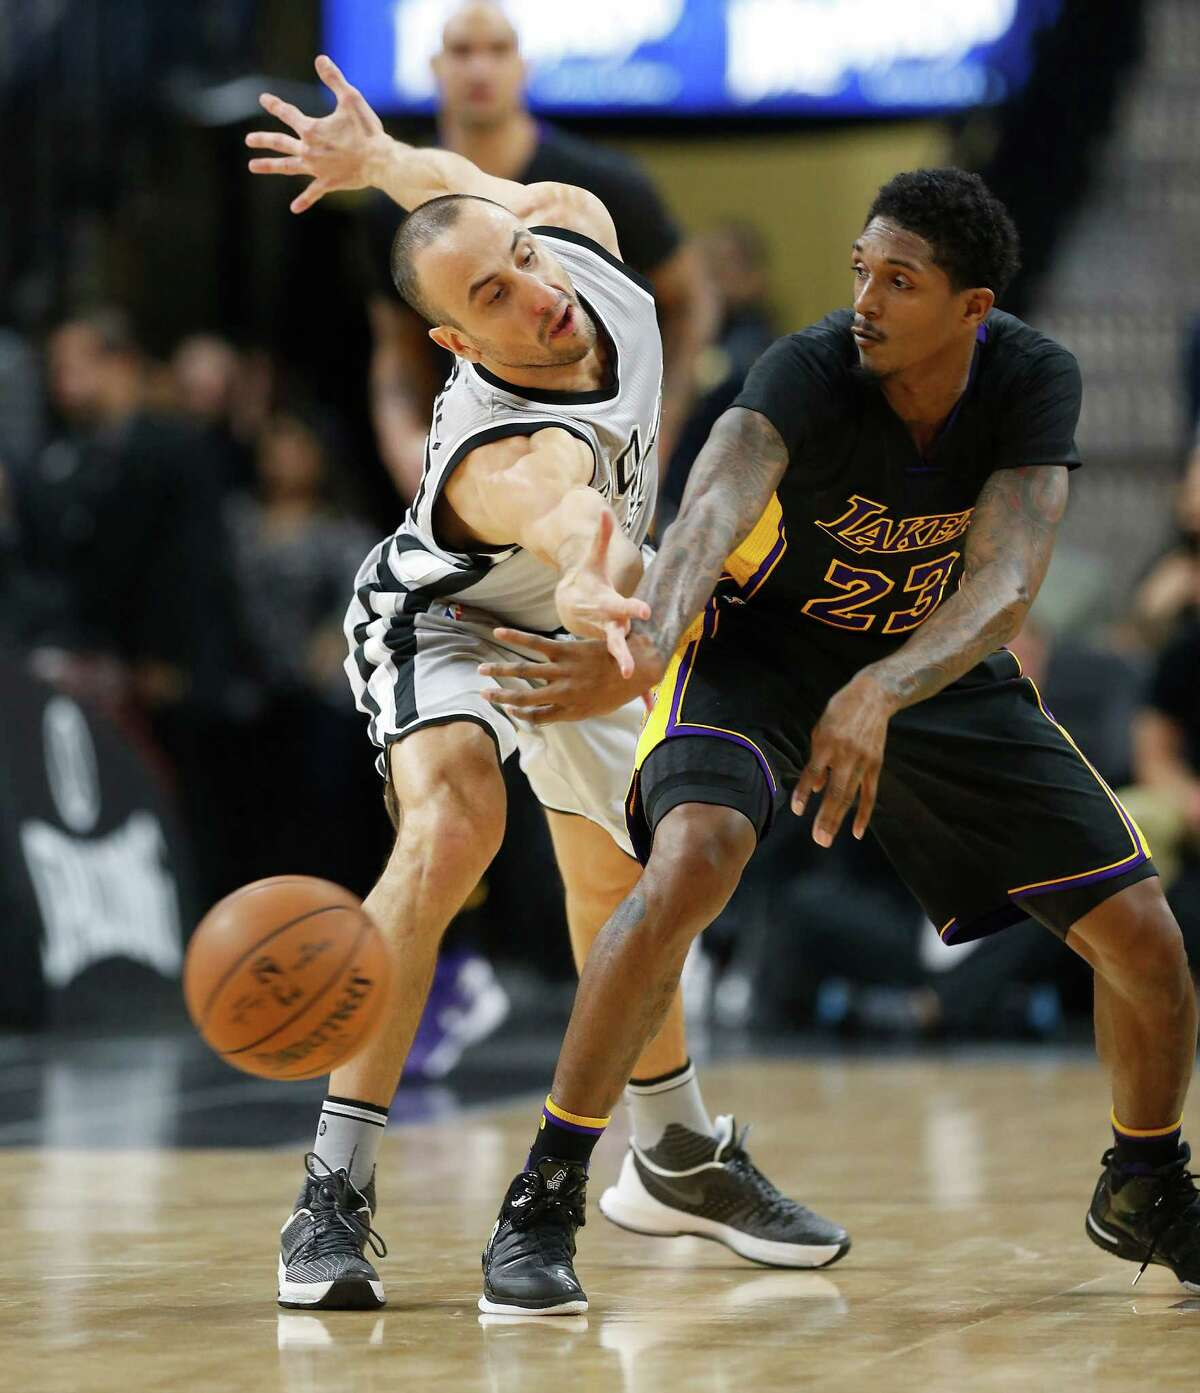 Spurs' Manu Ginobili (20) defends against Los Angeles Lakers' Louis Williams (23) at the AT&T Center on Friday, Dec. 11, 2015. (Kin Man Hui/San Antonio Express-News)